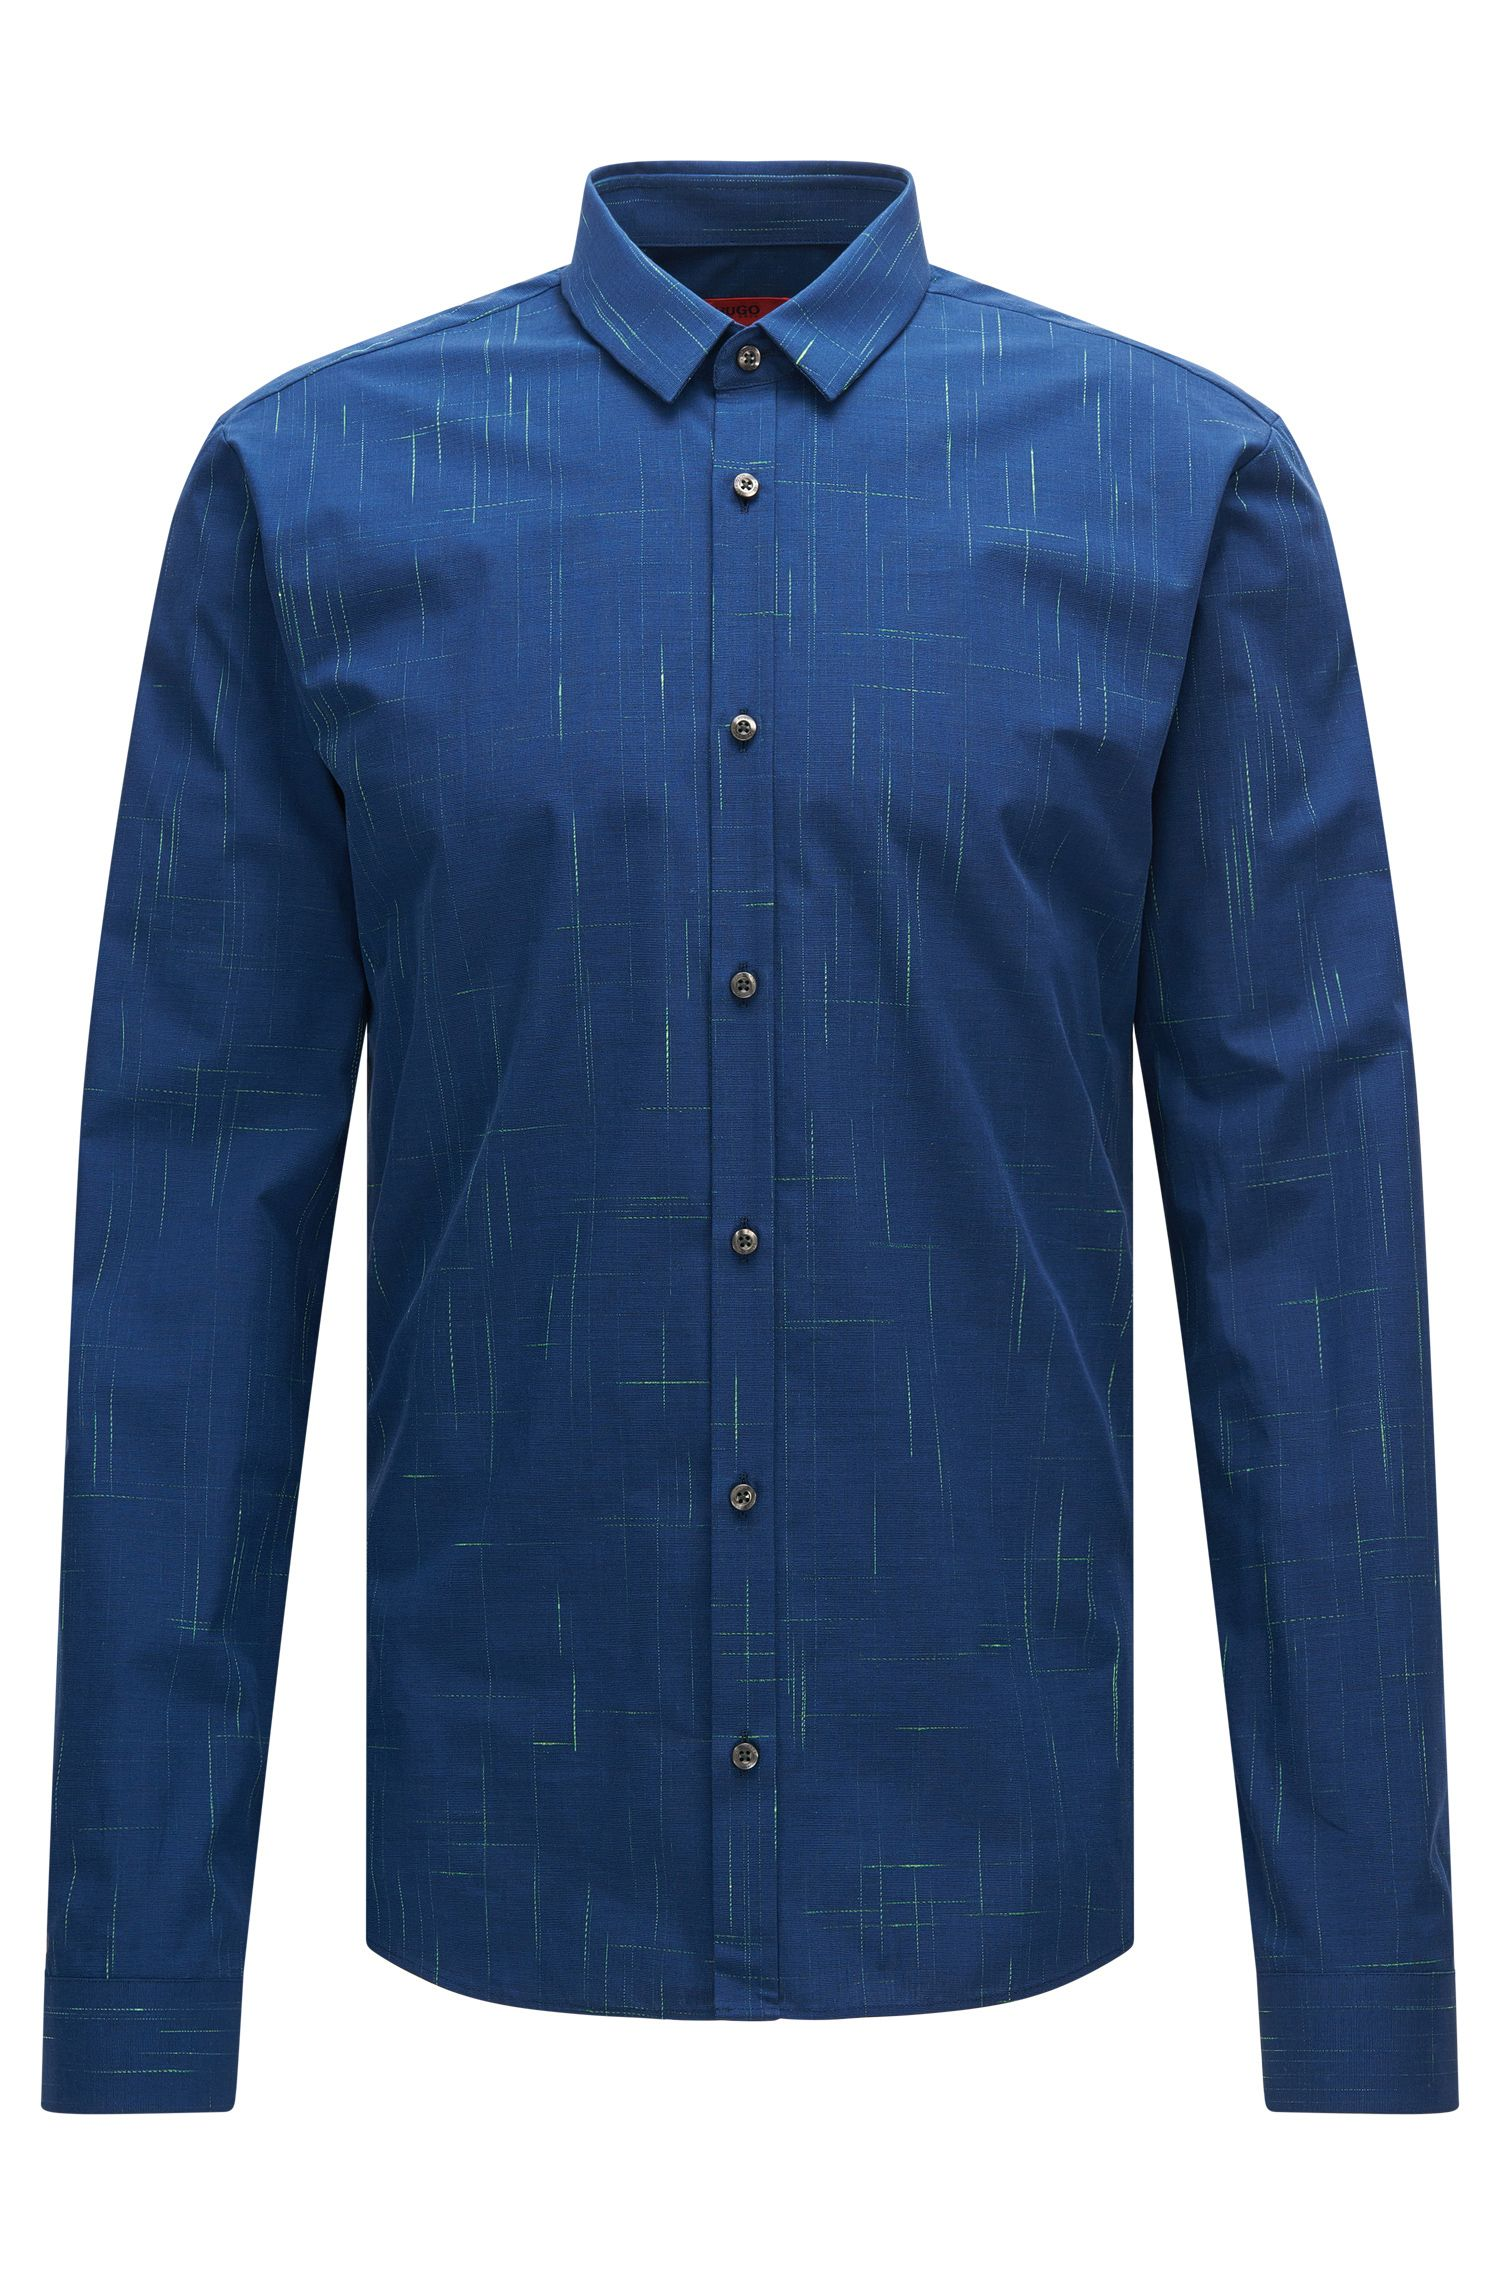 'Ero' | Slim Fit, Cotton Button Down Shirt